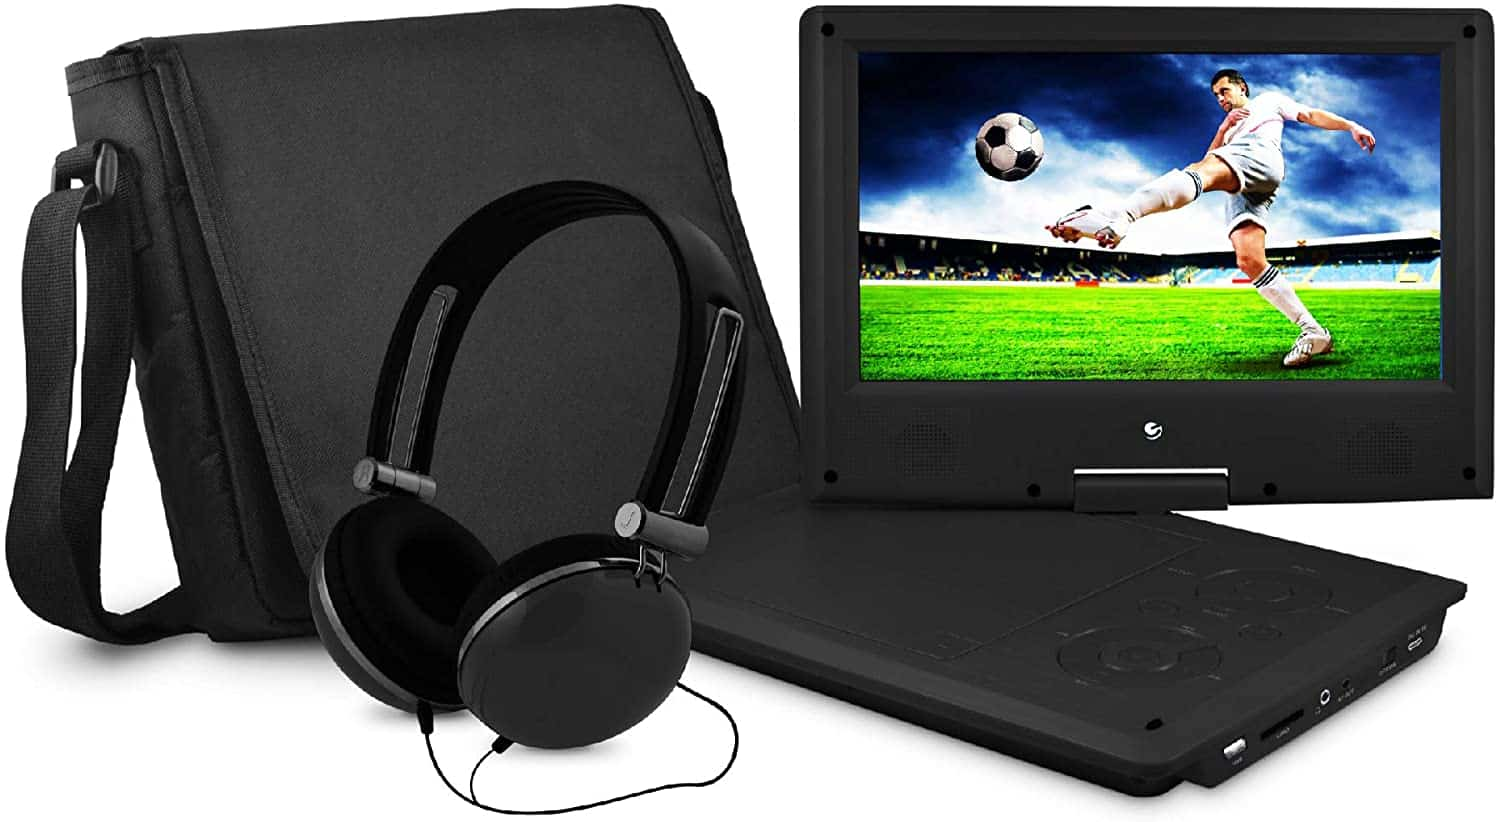 Portable DVD Player with Matching Headphones and Bag